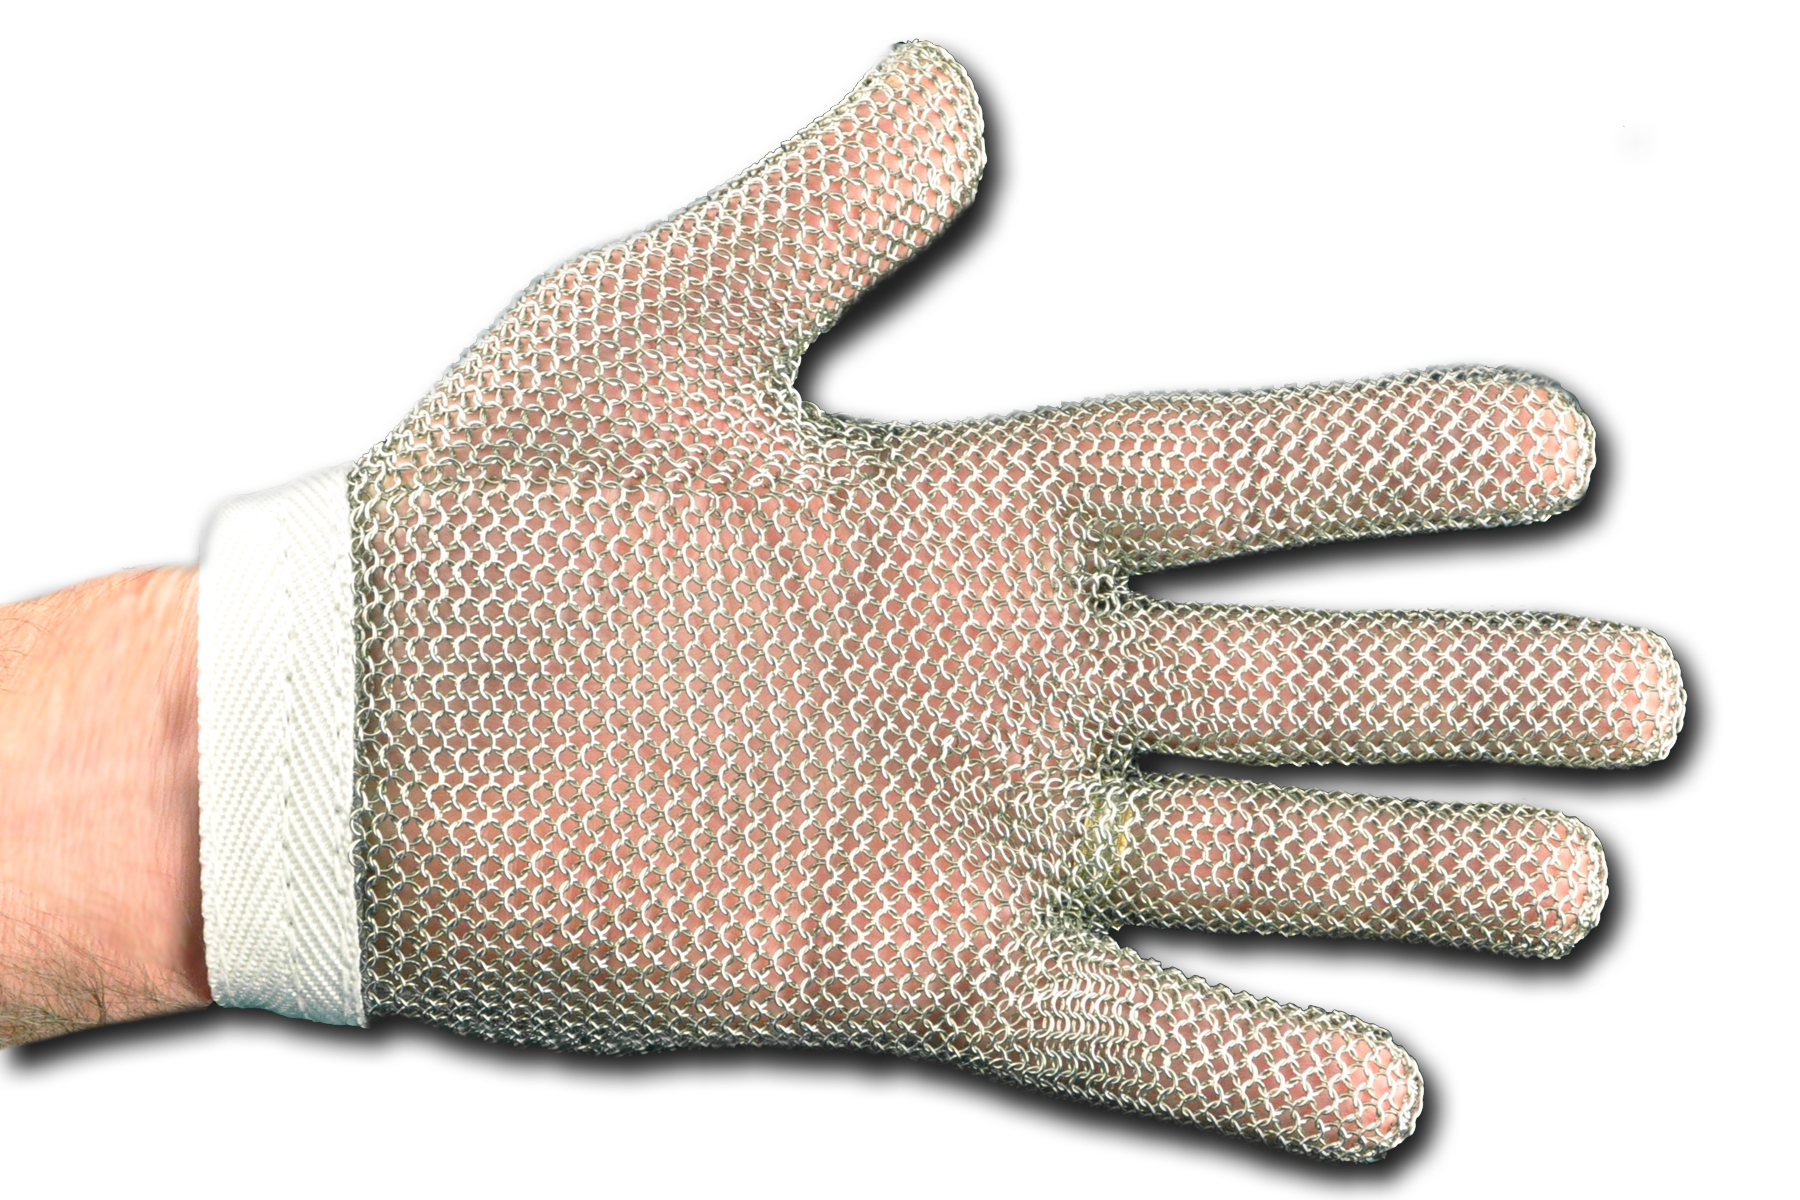 Dexter Russell 82043 protective gloves